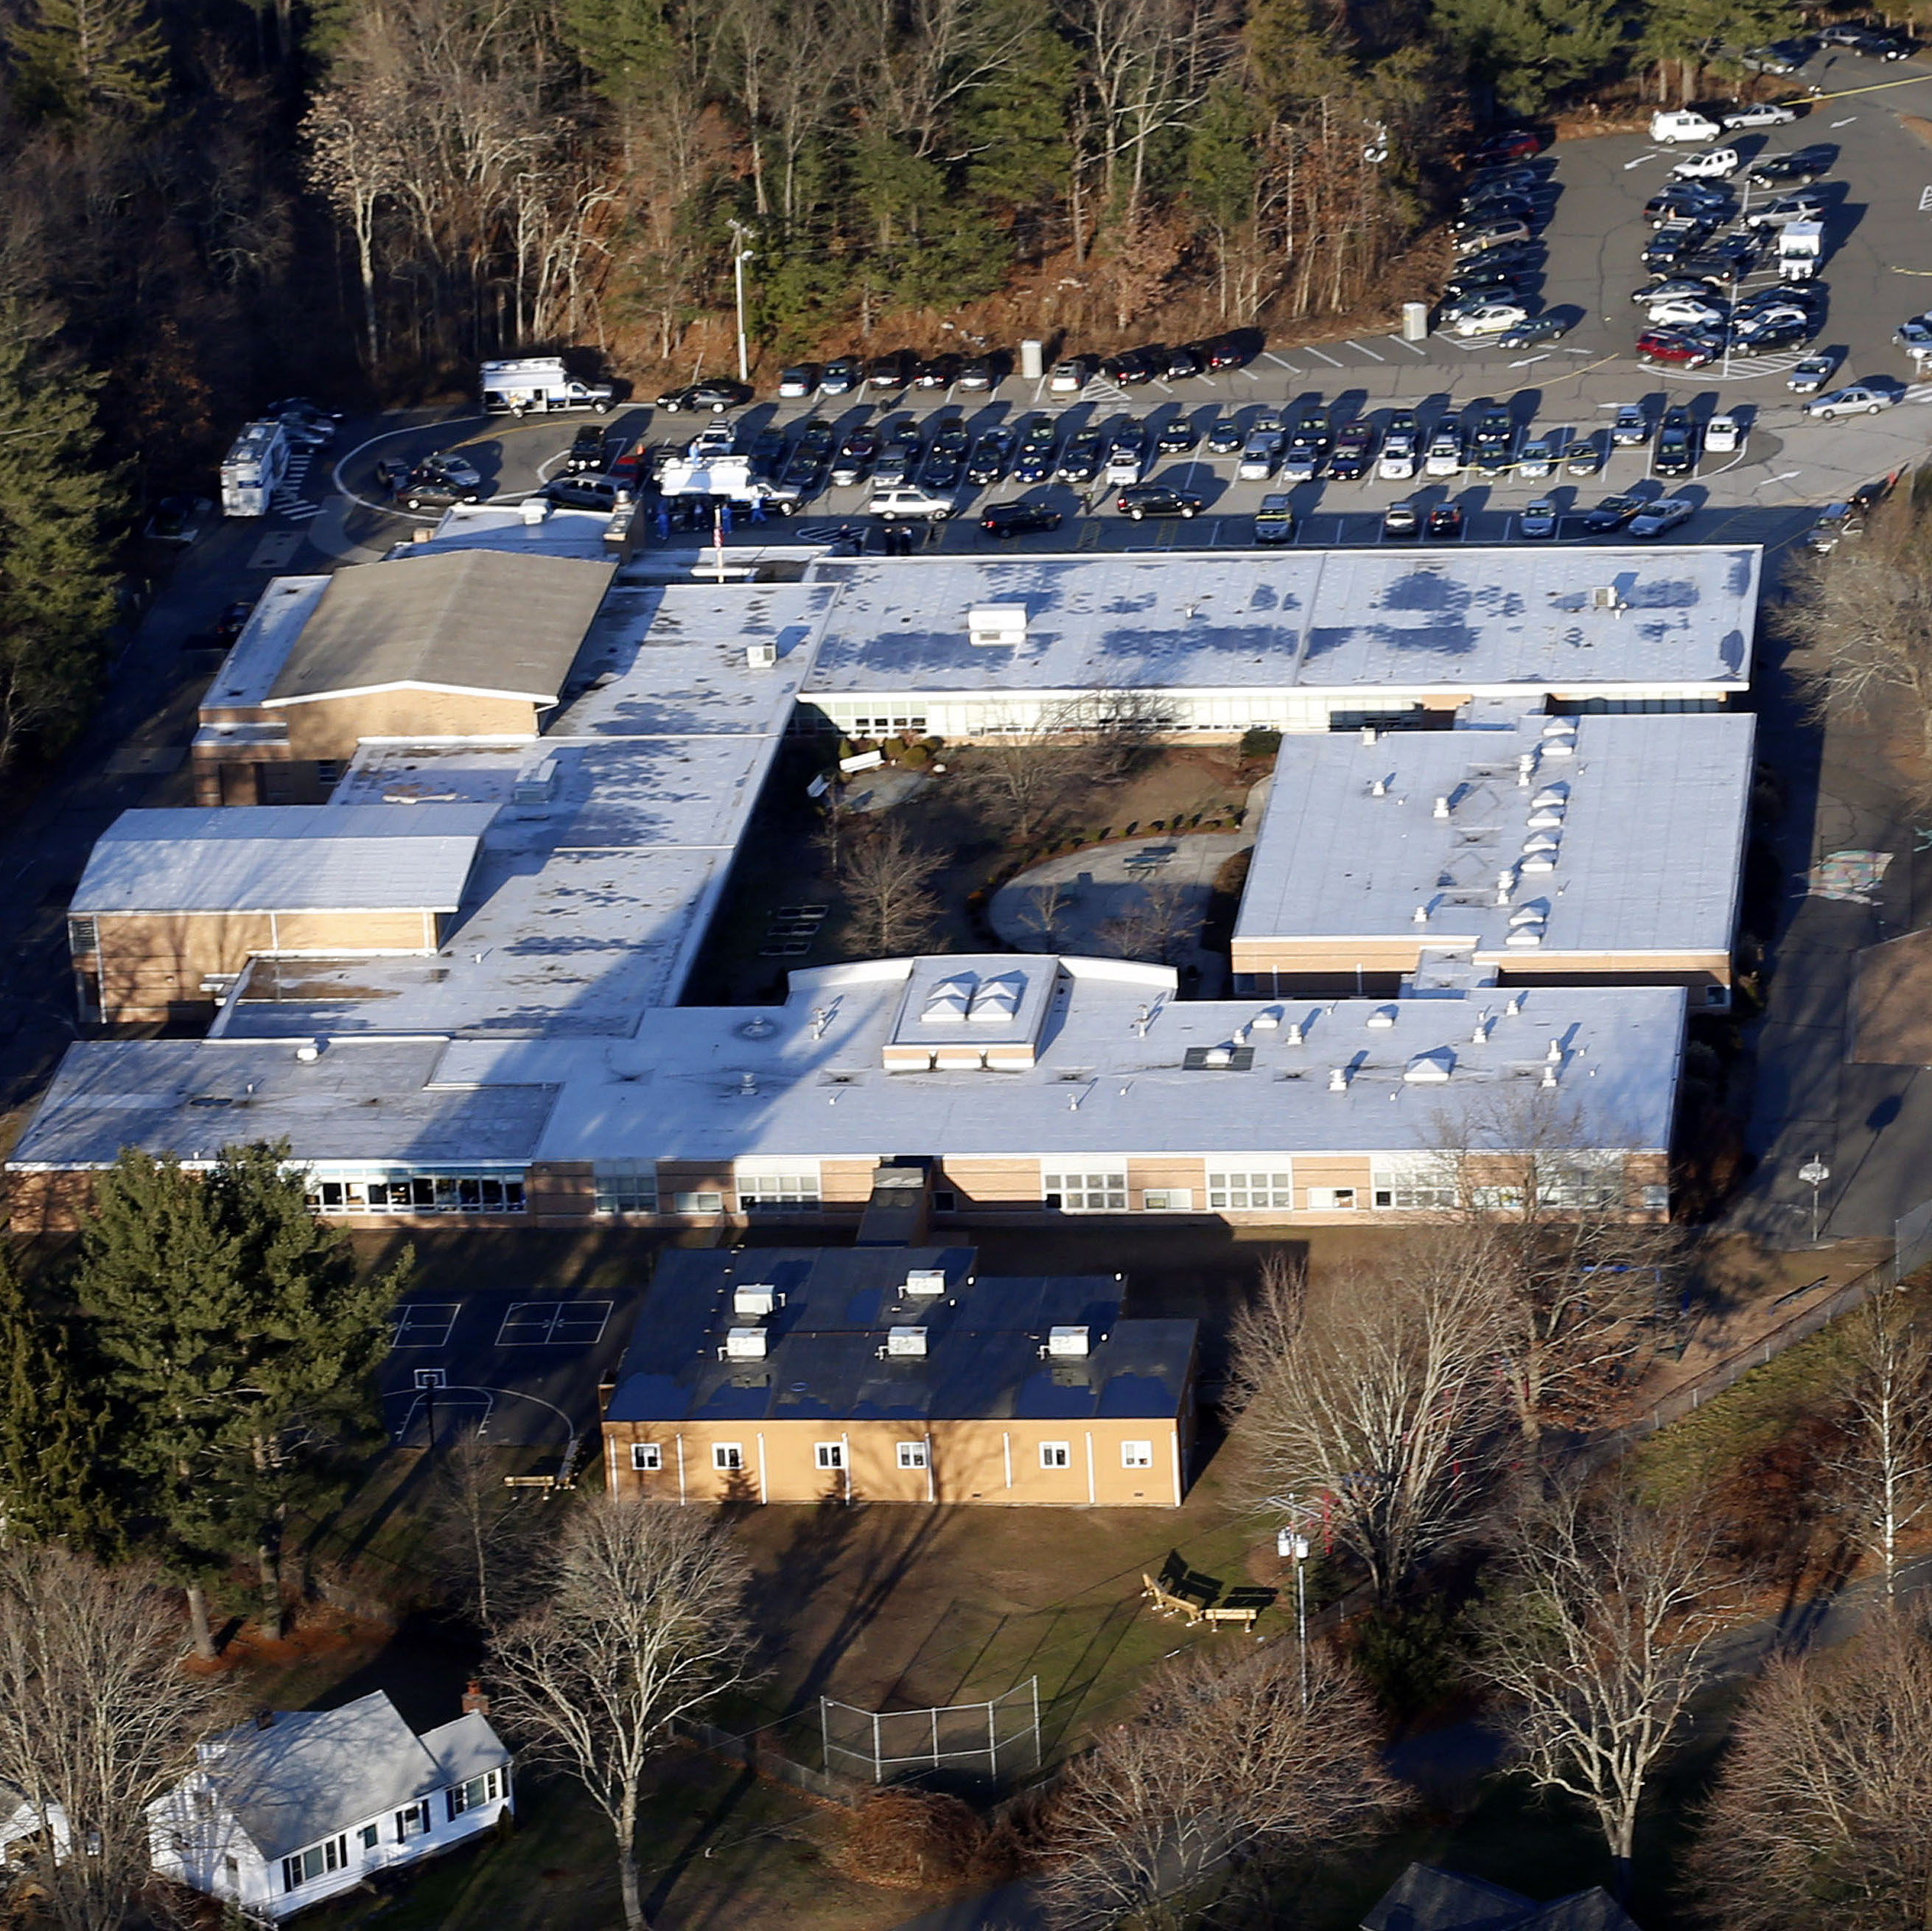 Sandy Hook Elementary School in Newtown, Conn., is shown last Dec. 14, when a gunman killed 20 children and six adults. The building is now being destroyed; a new school will be built on the site.